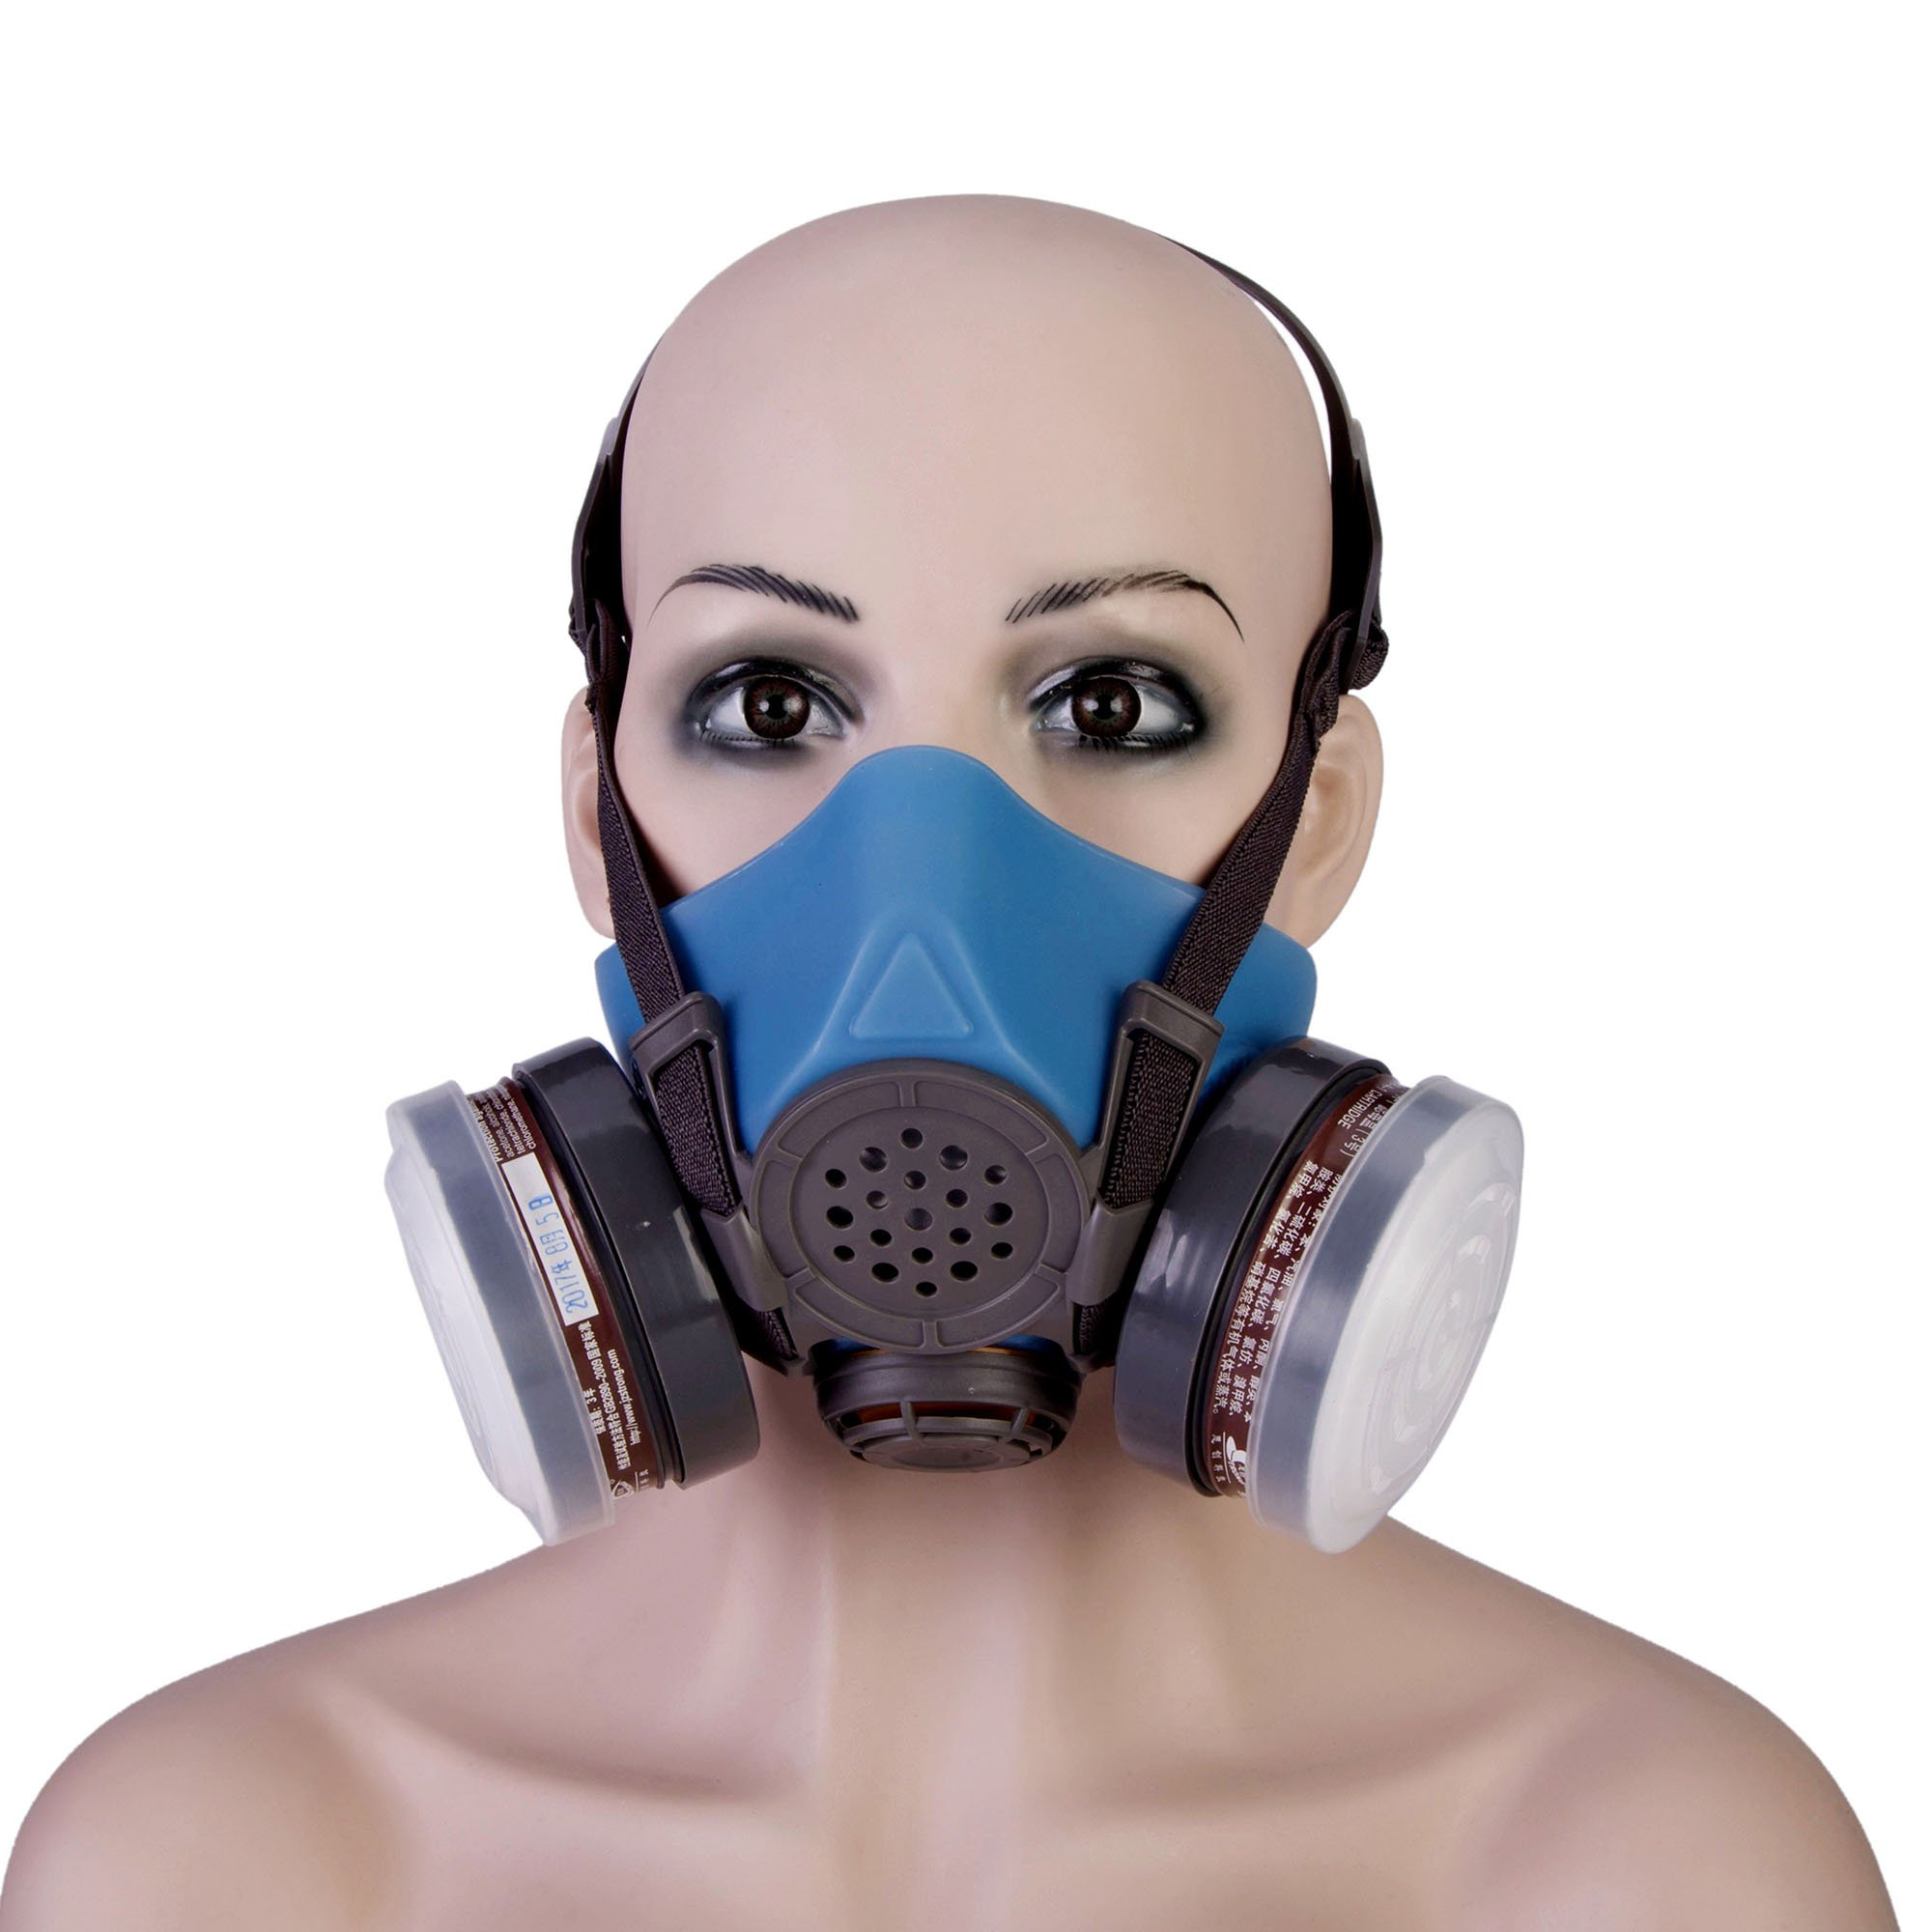 Joyutoy 3600 Series Half Facepiece Reusable Respirator Industrial Gas Chemical Anti-Dust Paint and Pesticide Respirator Mask with Adjustable Straps